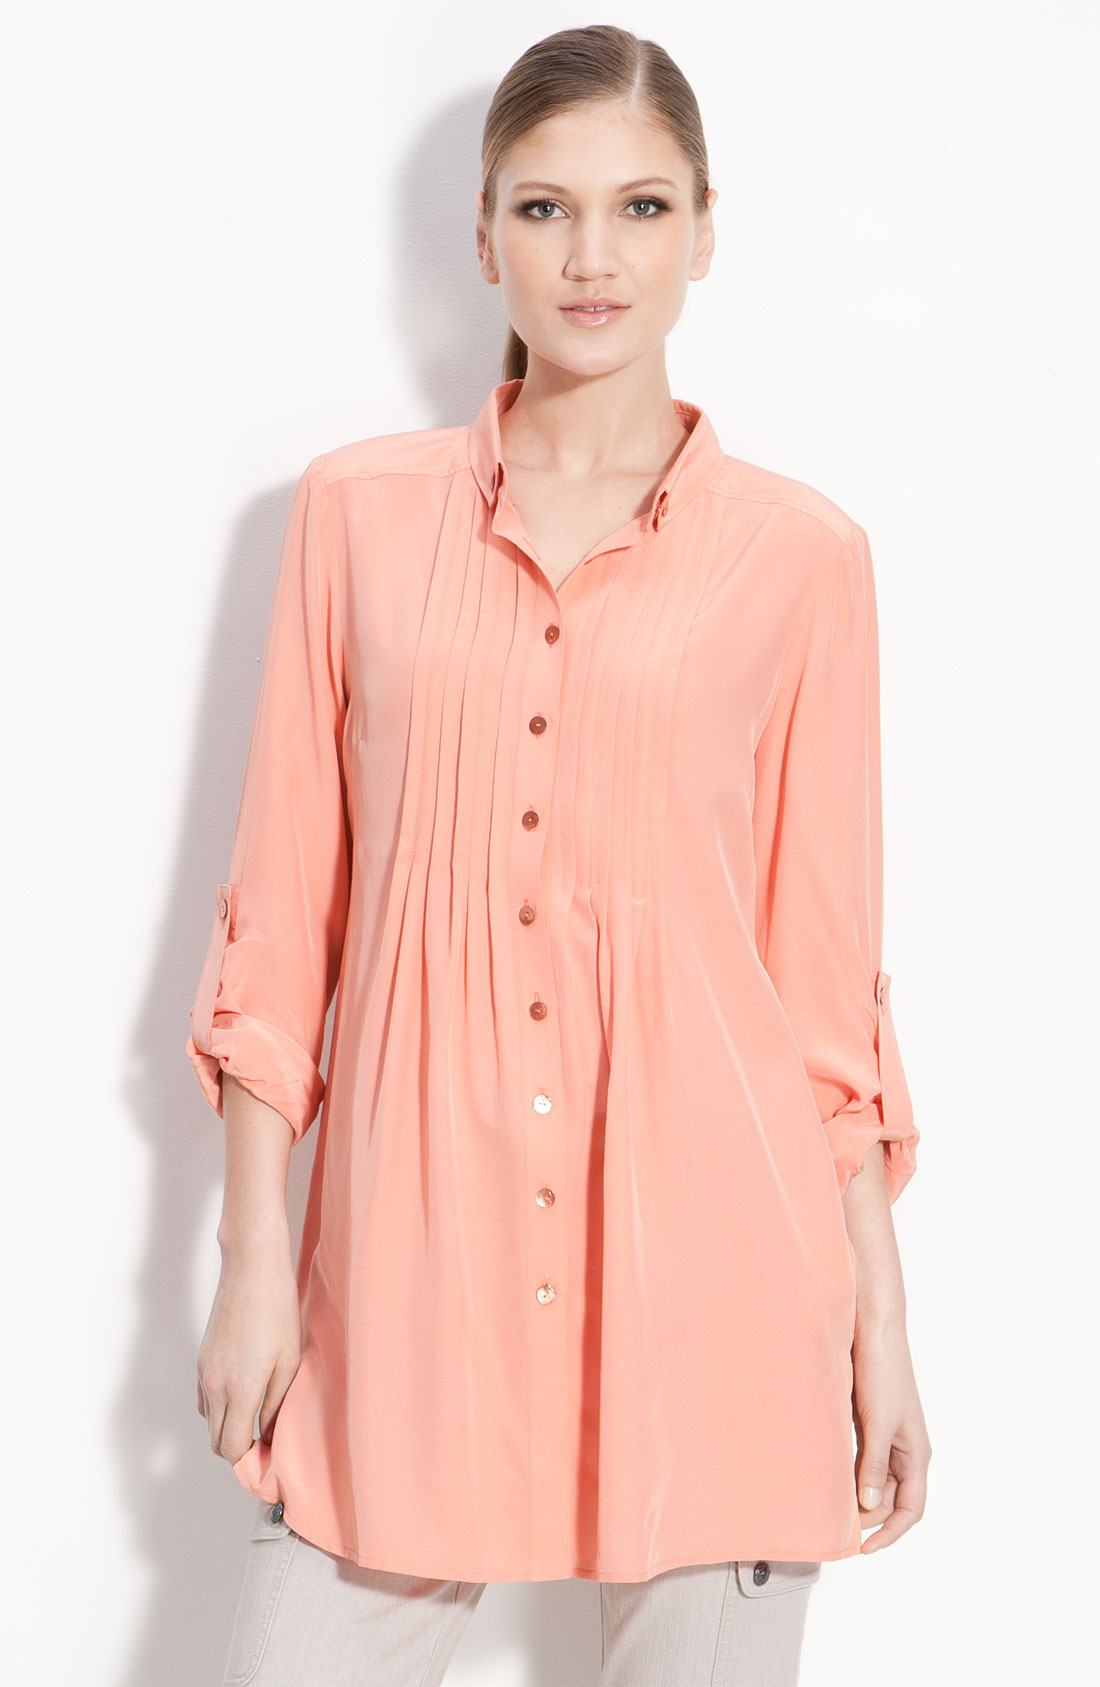 Shop women's tunics. Find unique, inspired styles of long sleeve tunic tops, linen tunics and embroidered tunics for women in misses sizes.